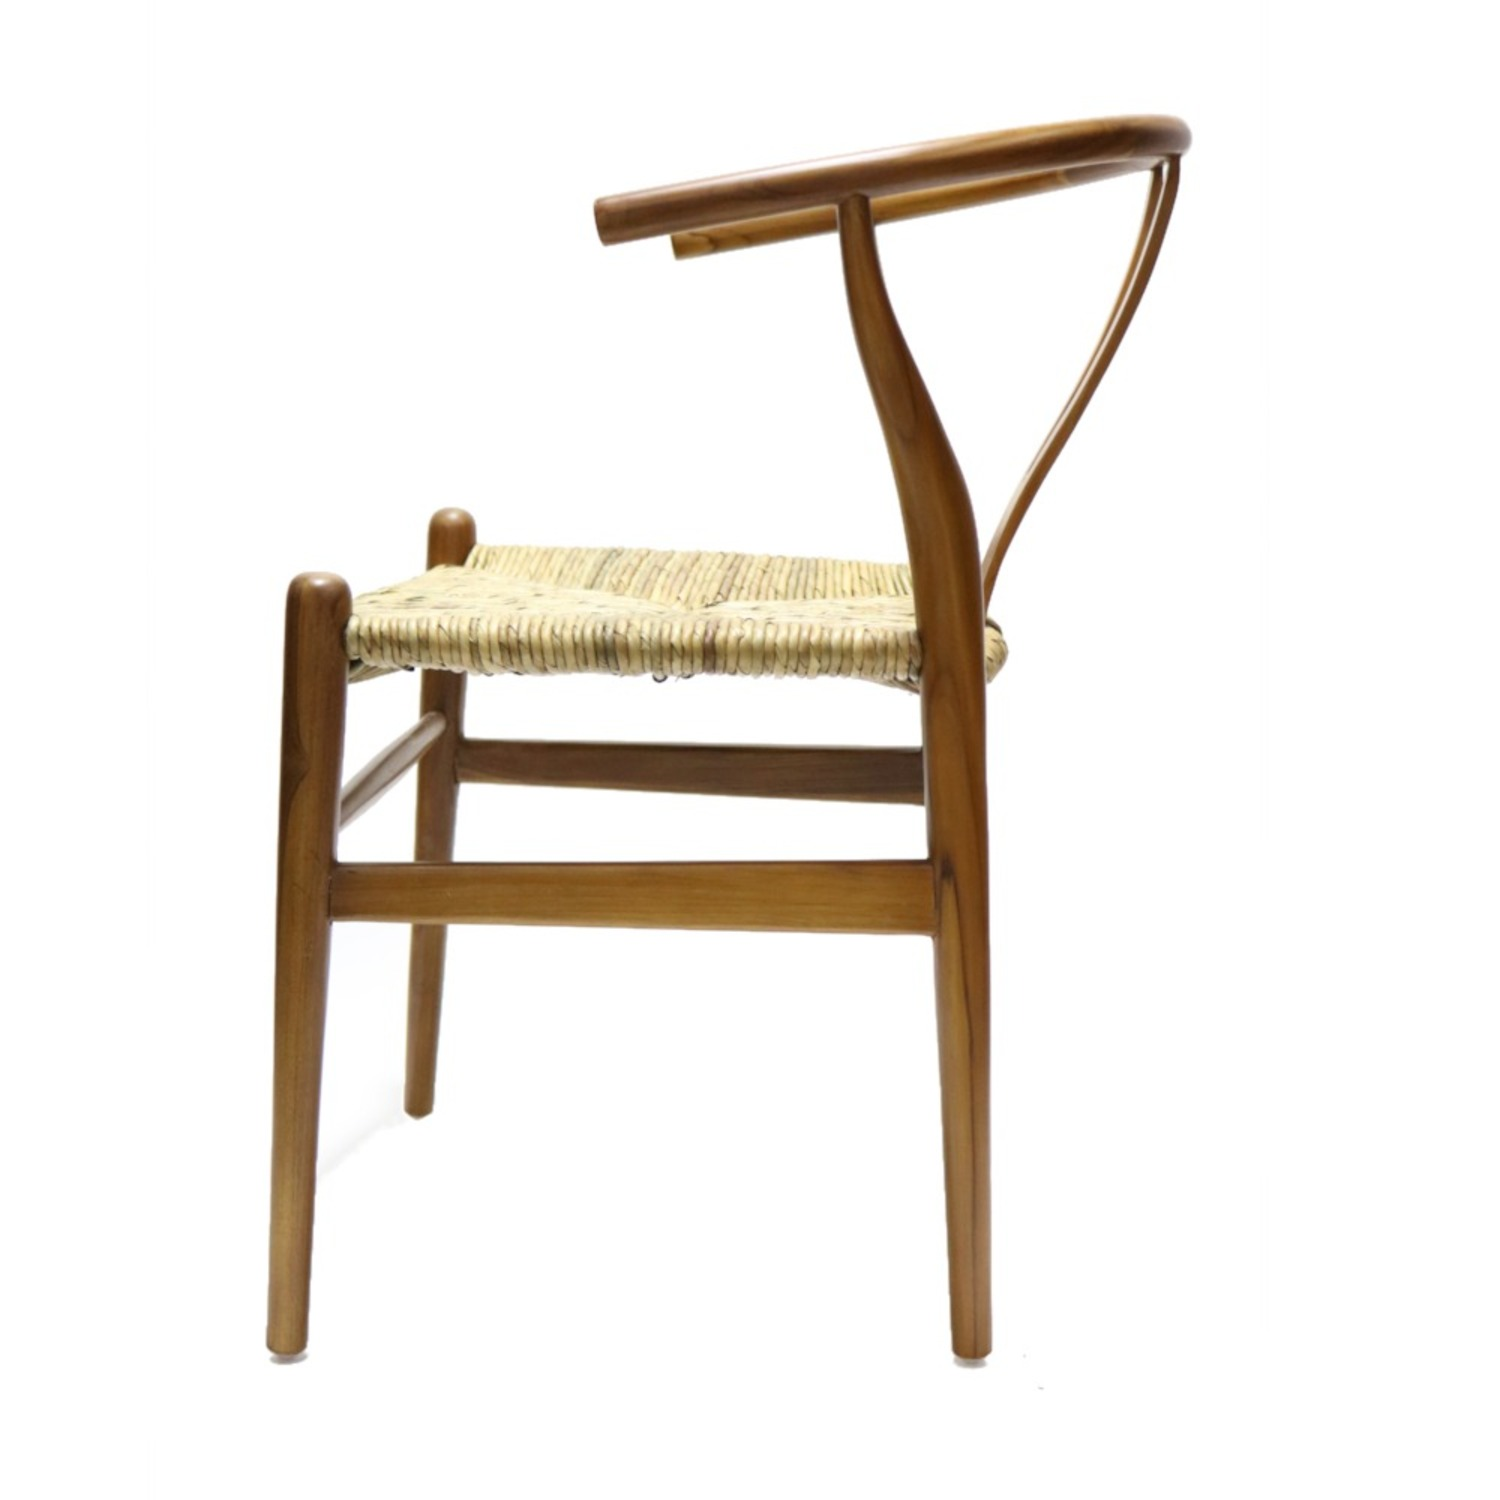 Dining Chair In Walnut Frame & Natural Hemp Seat - image-5